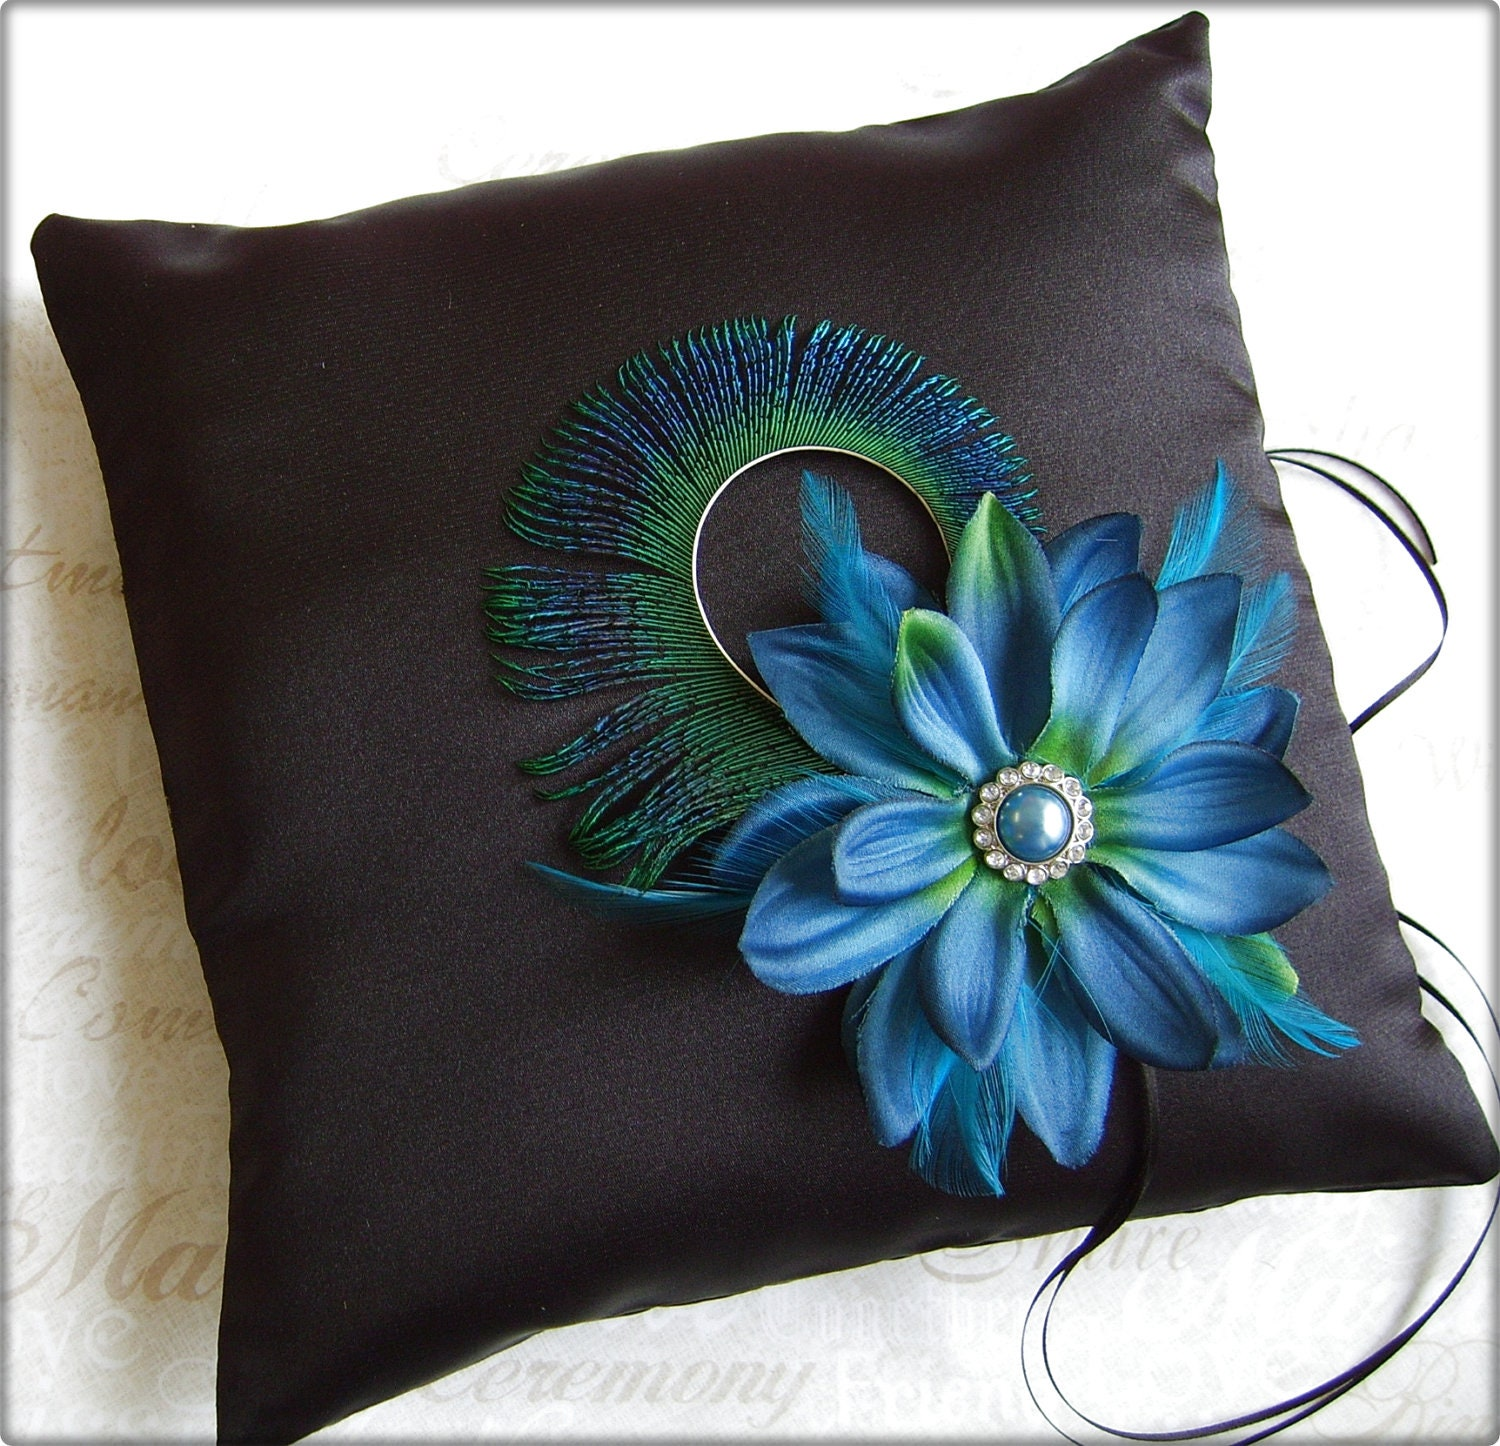 Peacock Wedding Ring Pillows, Black and Teal Ring Bearer Pillow, Peacock Feather Wedding Pillows, - All4Brides